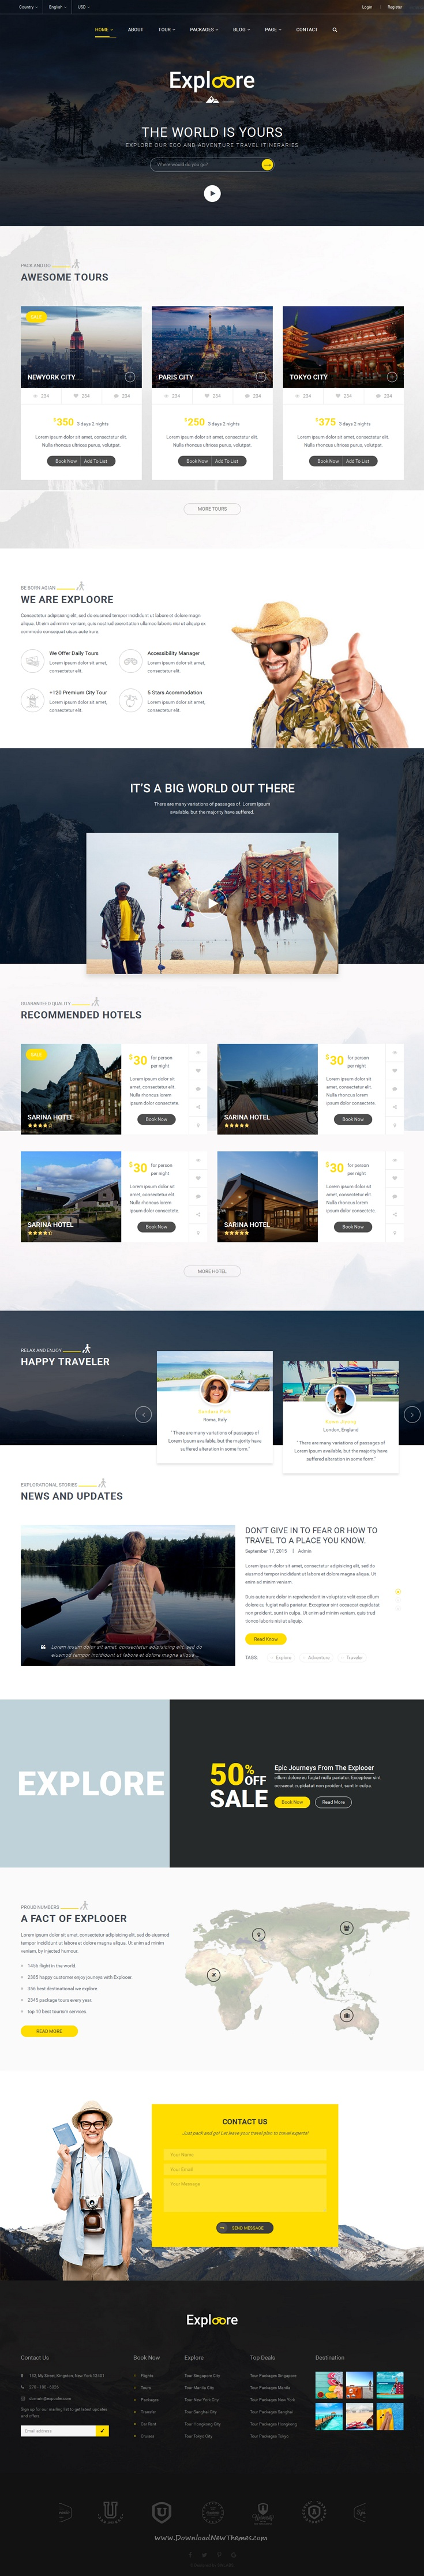 Travel Tour Booking Template | EXPLOORE Travel | Tour operator ...